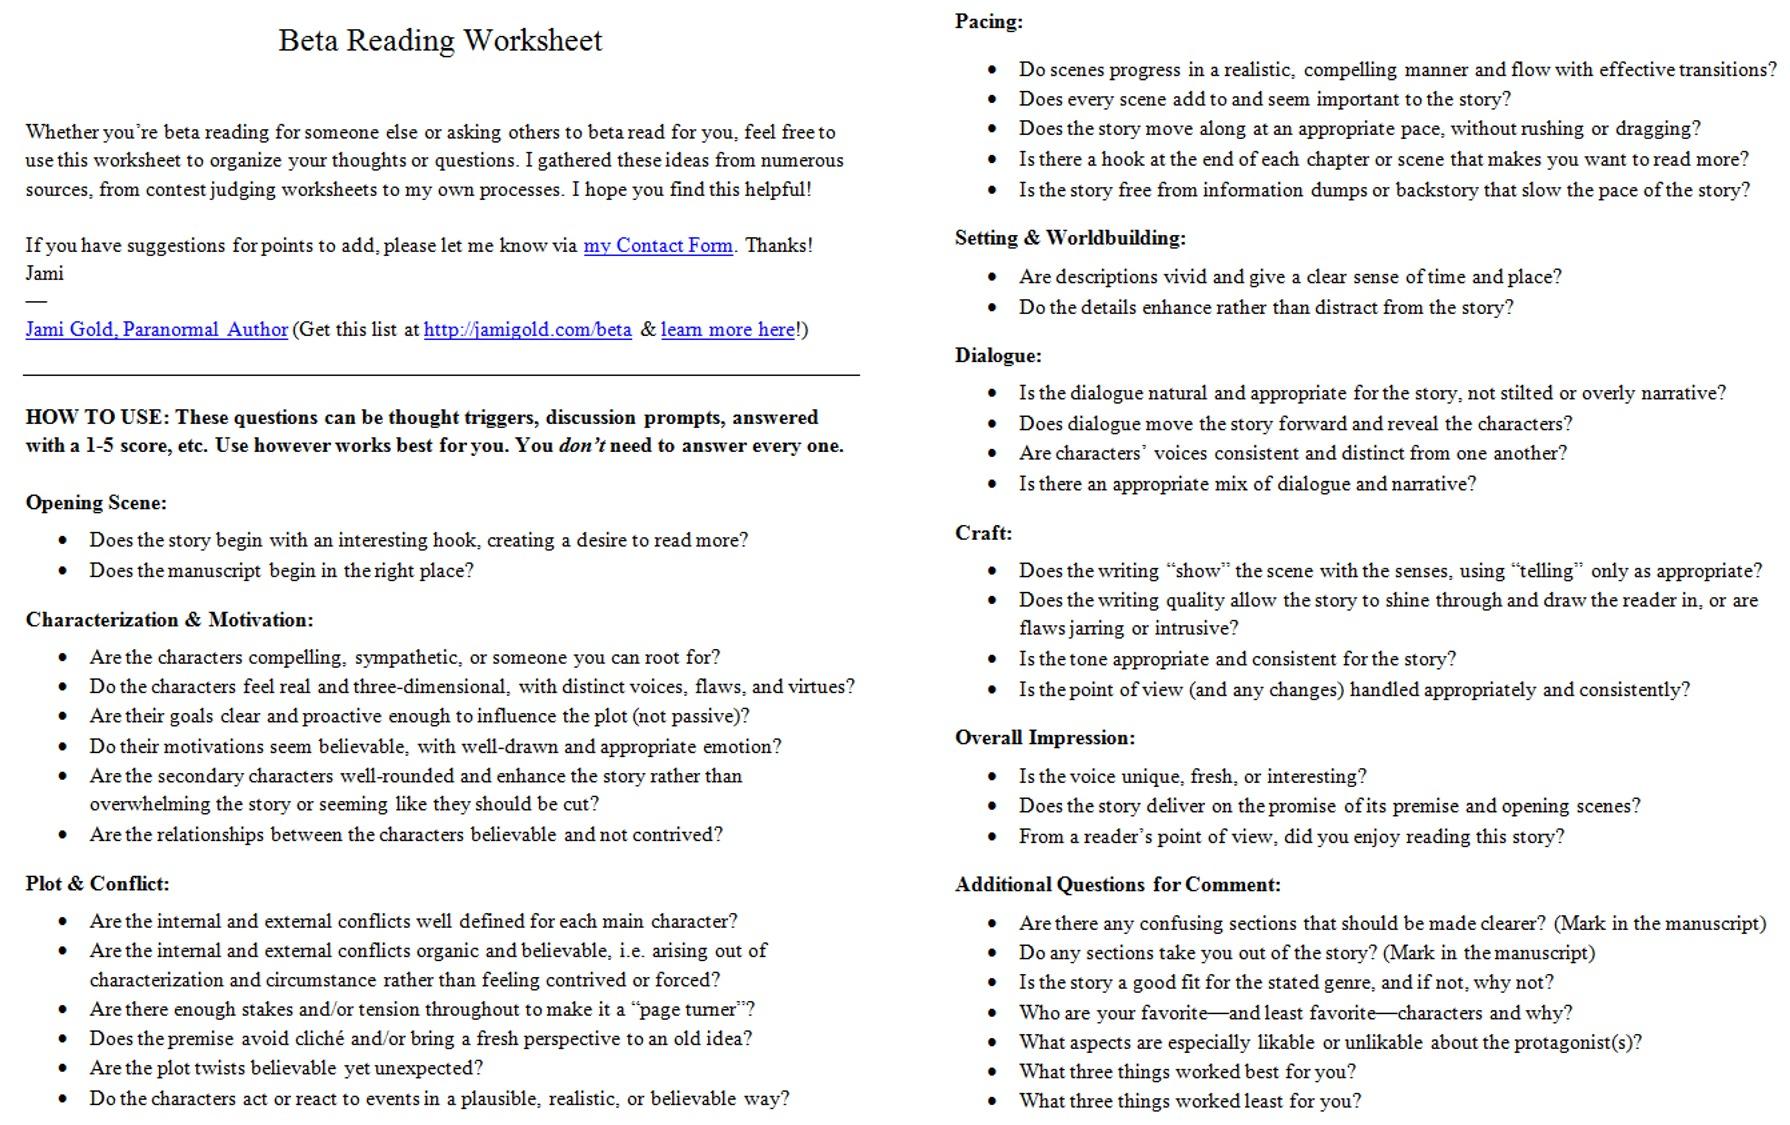 Proatmealus  Stunning Worksheets For Writers  Jami Gold Paranormal Author With Fetching Screen Shot Of The Twopage Beta Reading Worksheet With Attractive Hertzsprungrussell Diagram Worksheet Also Free Online Marriage Counseling Worksheets In Addition Quadratics Worksheet And Bill Nye Rocks And Soil Worksheet As Well As Visual Scanning Worksheets Additionally Congruent Figures Worksheet From Jamigoldcom With Proatmealus  Fetching Worksheets For Writers  Jami Gold Paranormal Author With Attractive Screen Shot Of The Twopage Beta Reading Worksheet And Stunning Hertzsprungrussell Diagram Worksheet Also Free Online Marriage Counseling Worksheets In Addition Quadratics Worksheet From Jamigoldcom